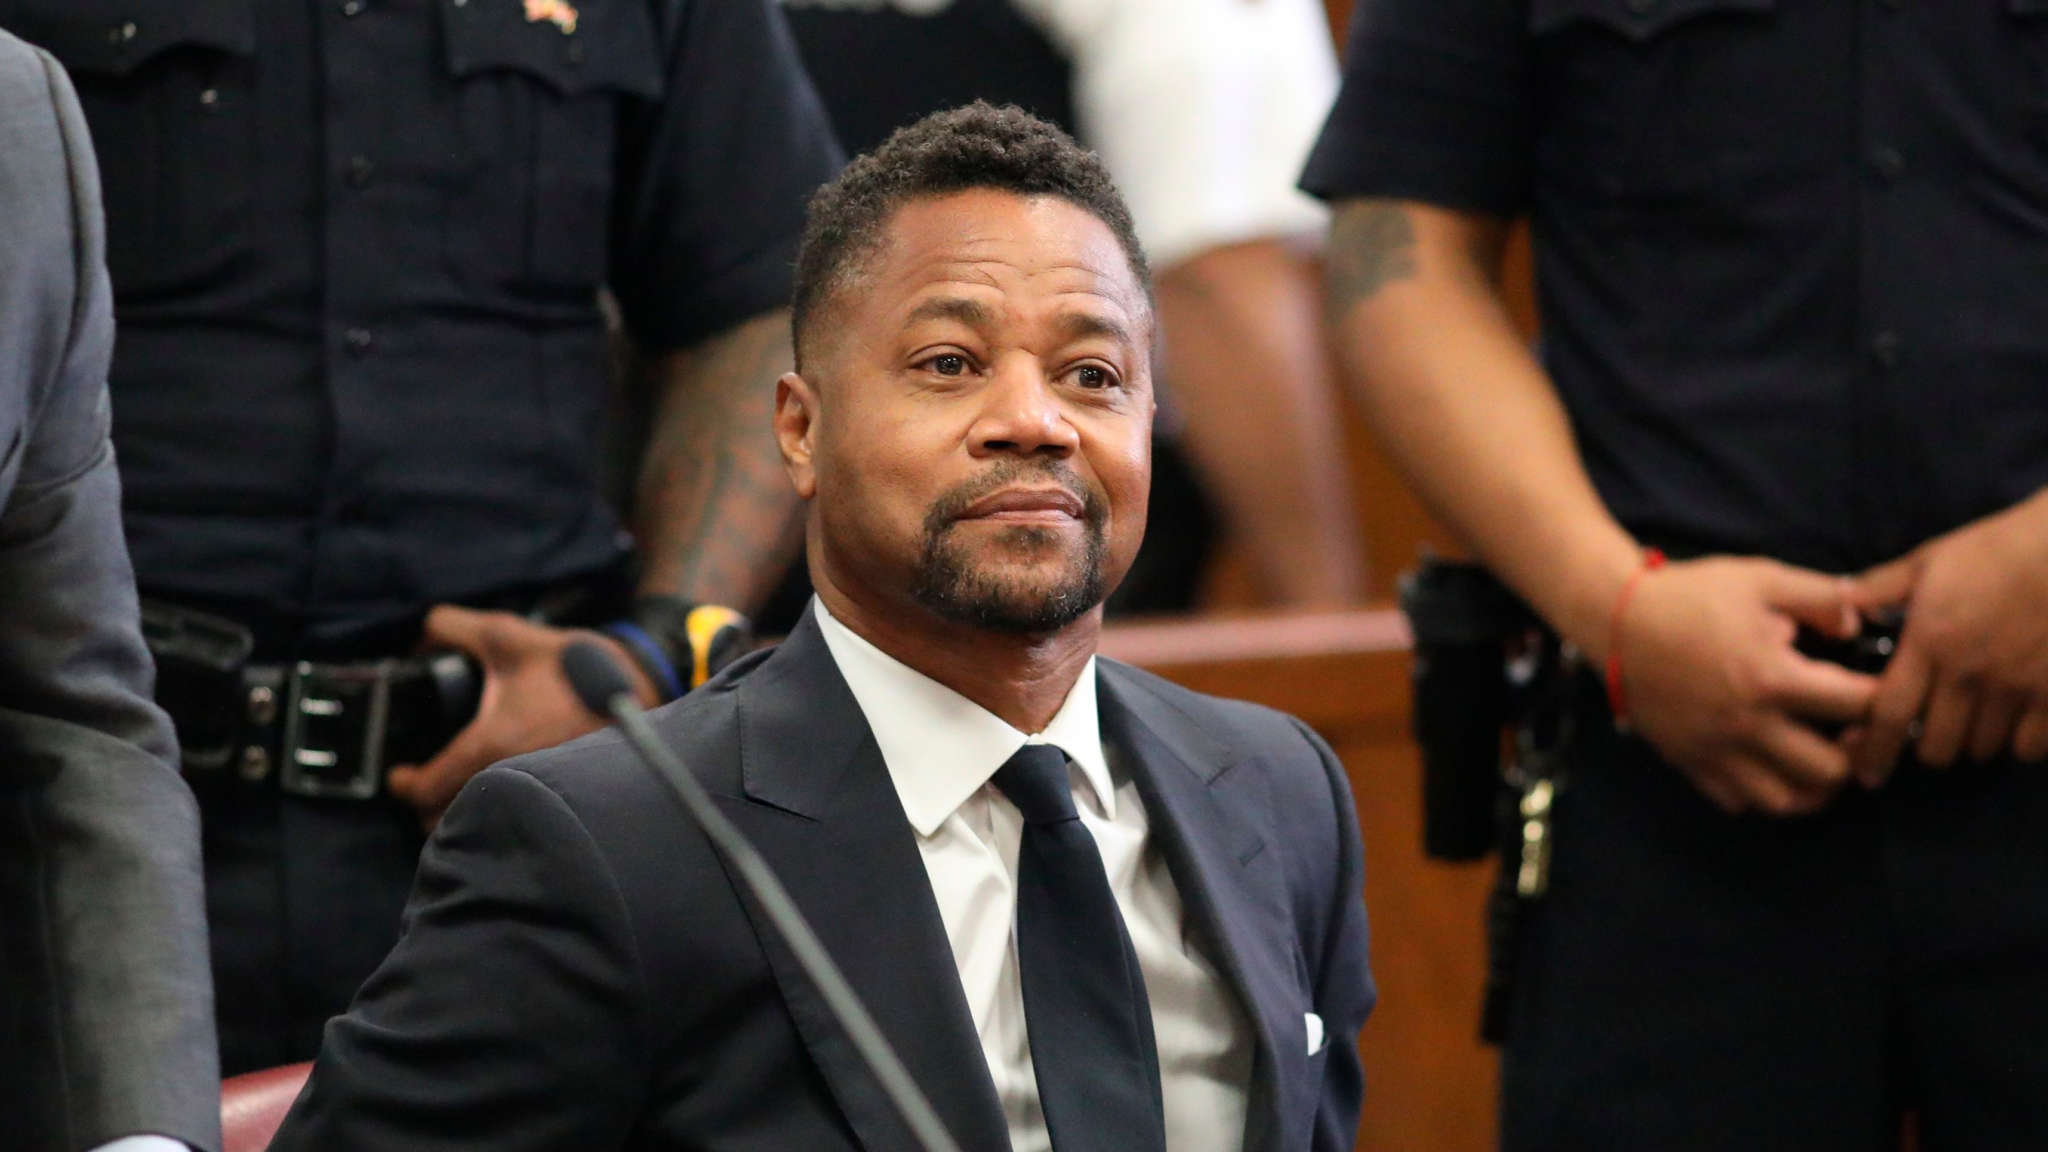 The 15th Woman Accuses Cuba Gooding Jr. Of Sexual Misconduct After He Pleads Not Guilty